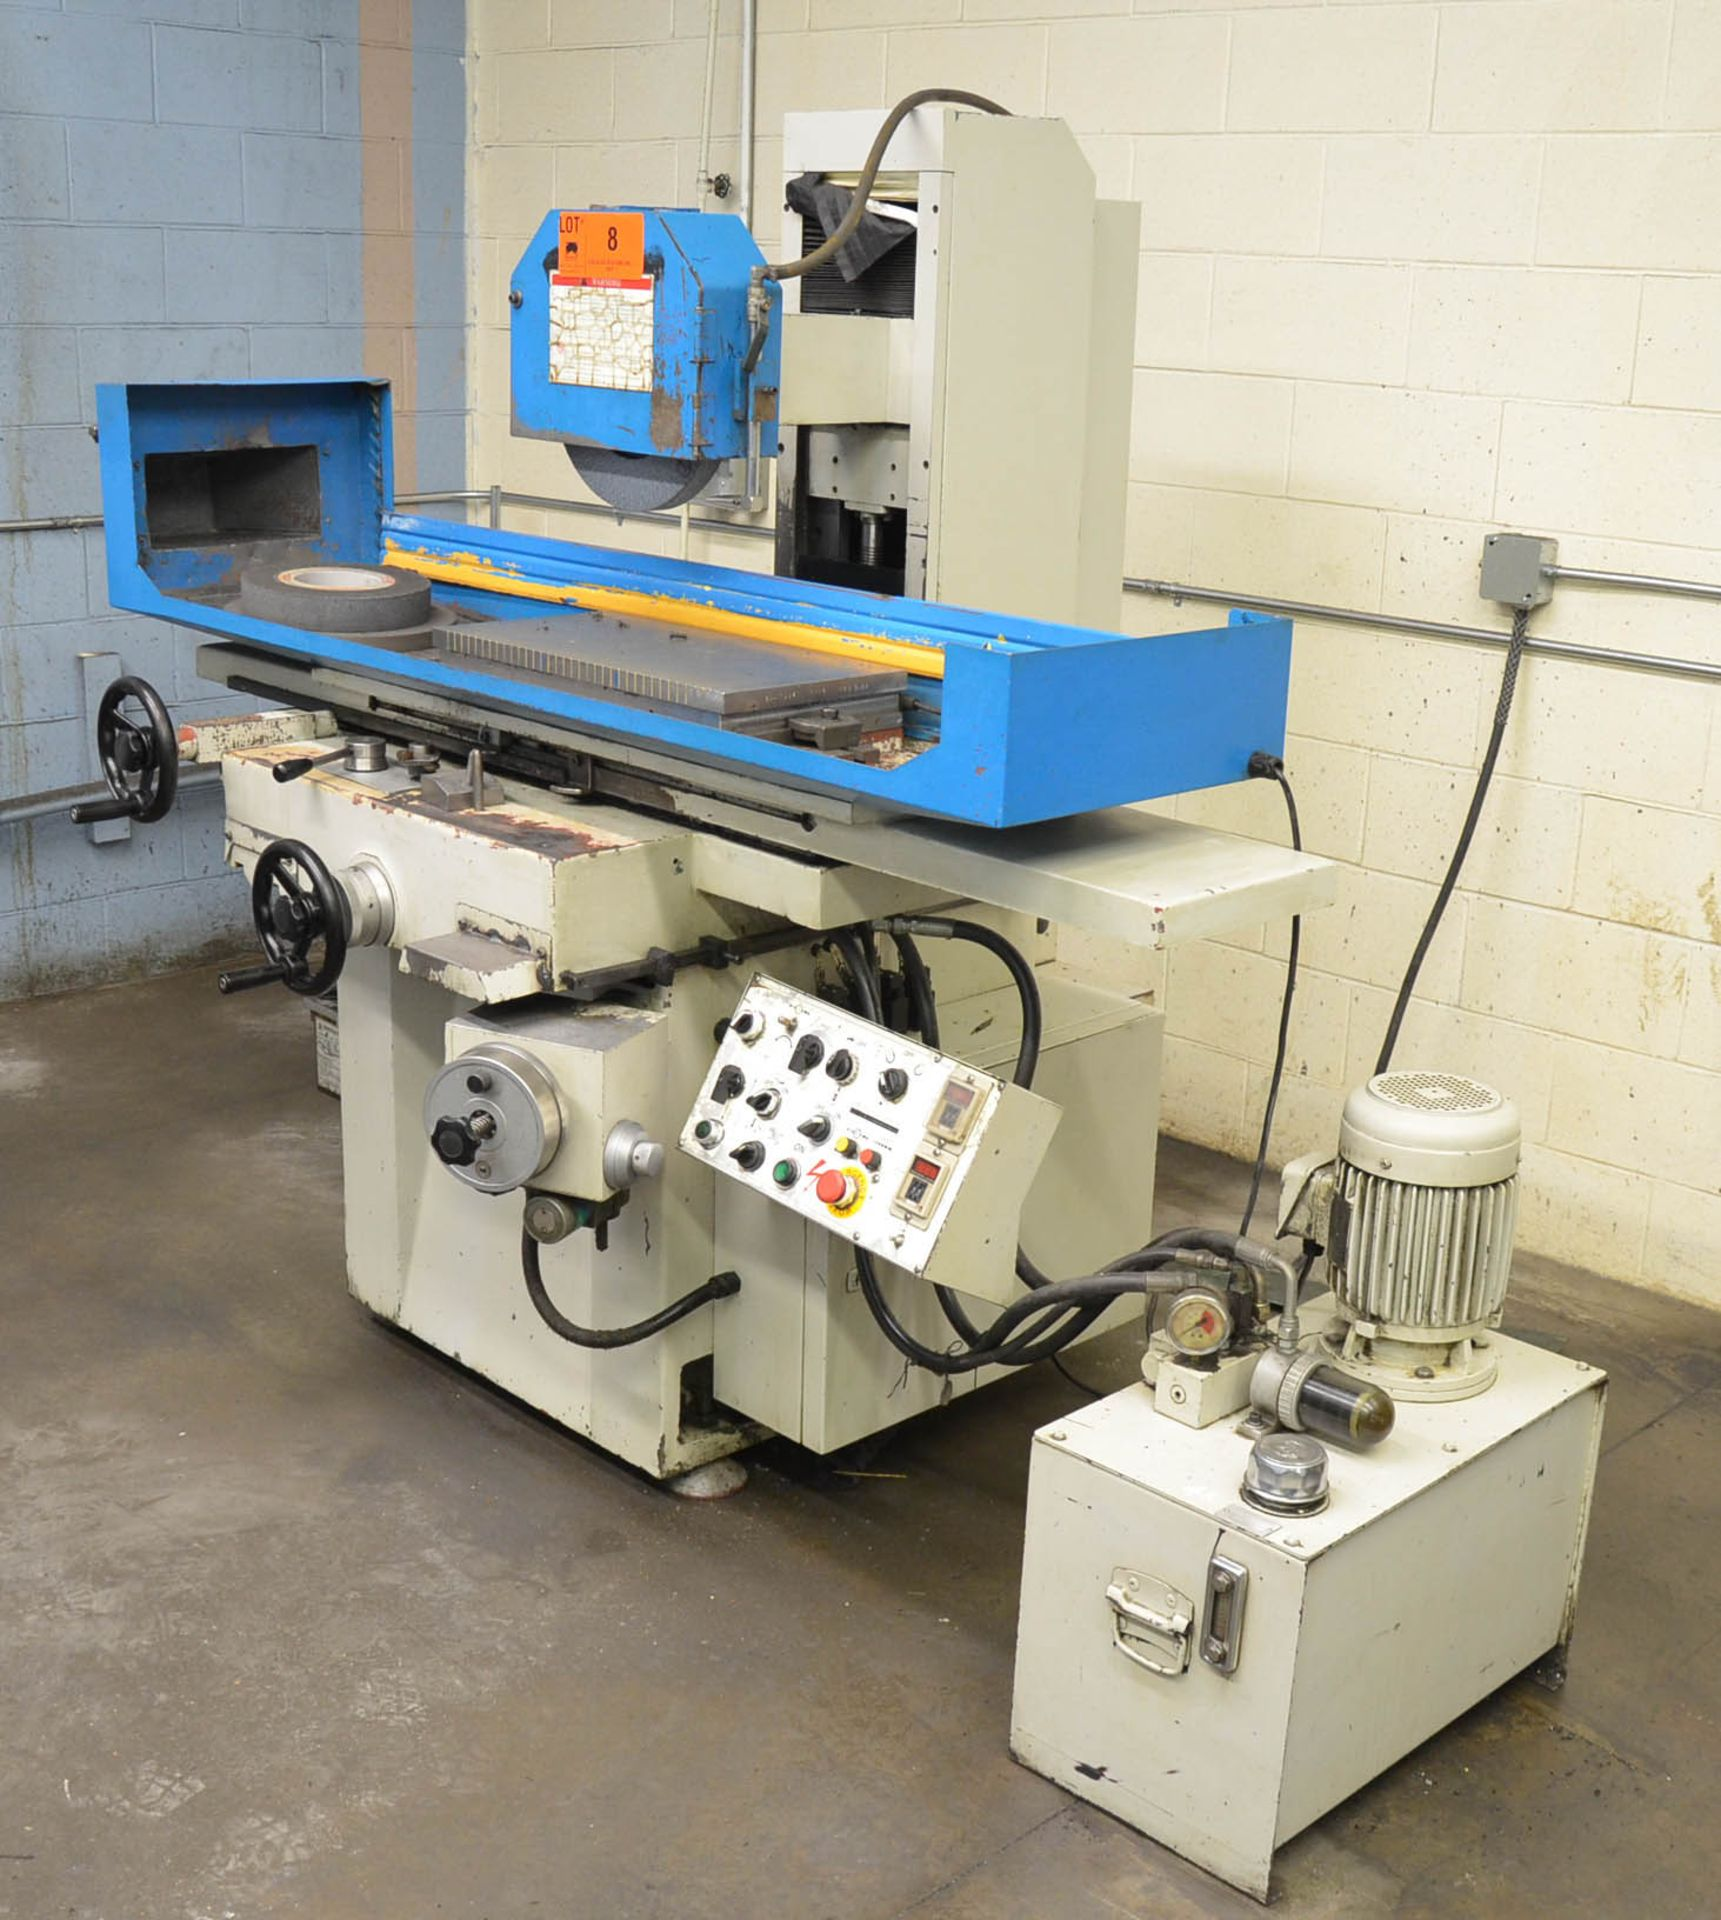 """PROTH (2005) PSGS-3060AH HYDRAULIC SURFACE GRINDER WITH 12""""X24"""" ELECTRO-MAGNETIC CHUCK, 16"""" WHEEL, - Image 2 of 6"""